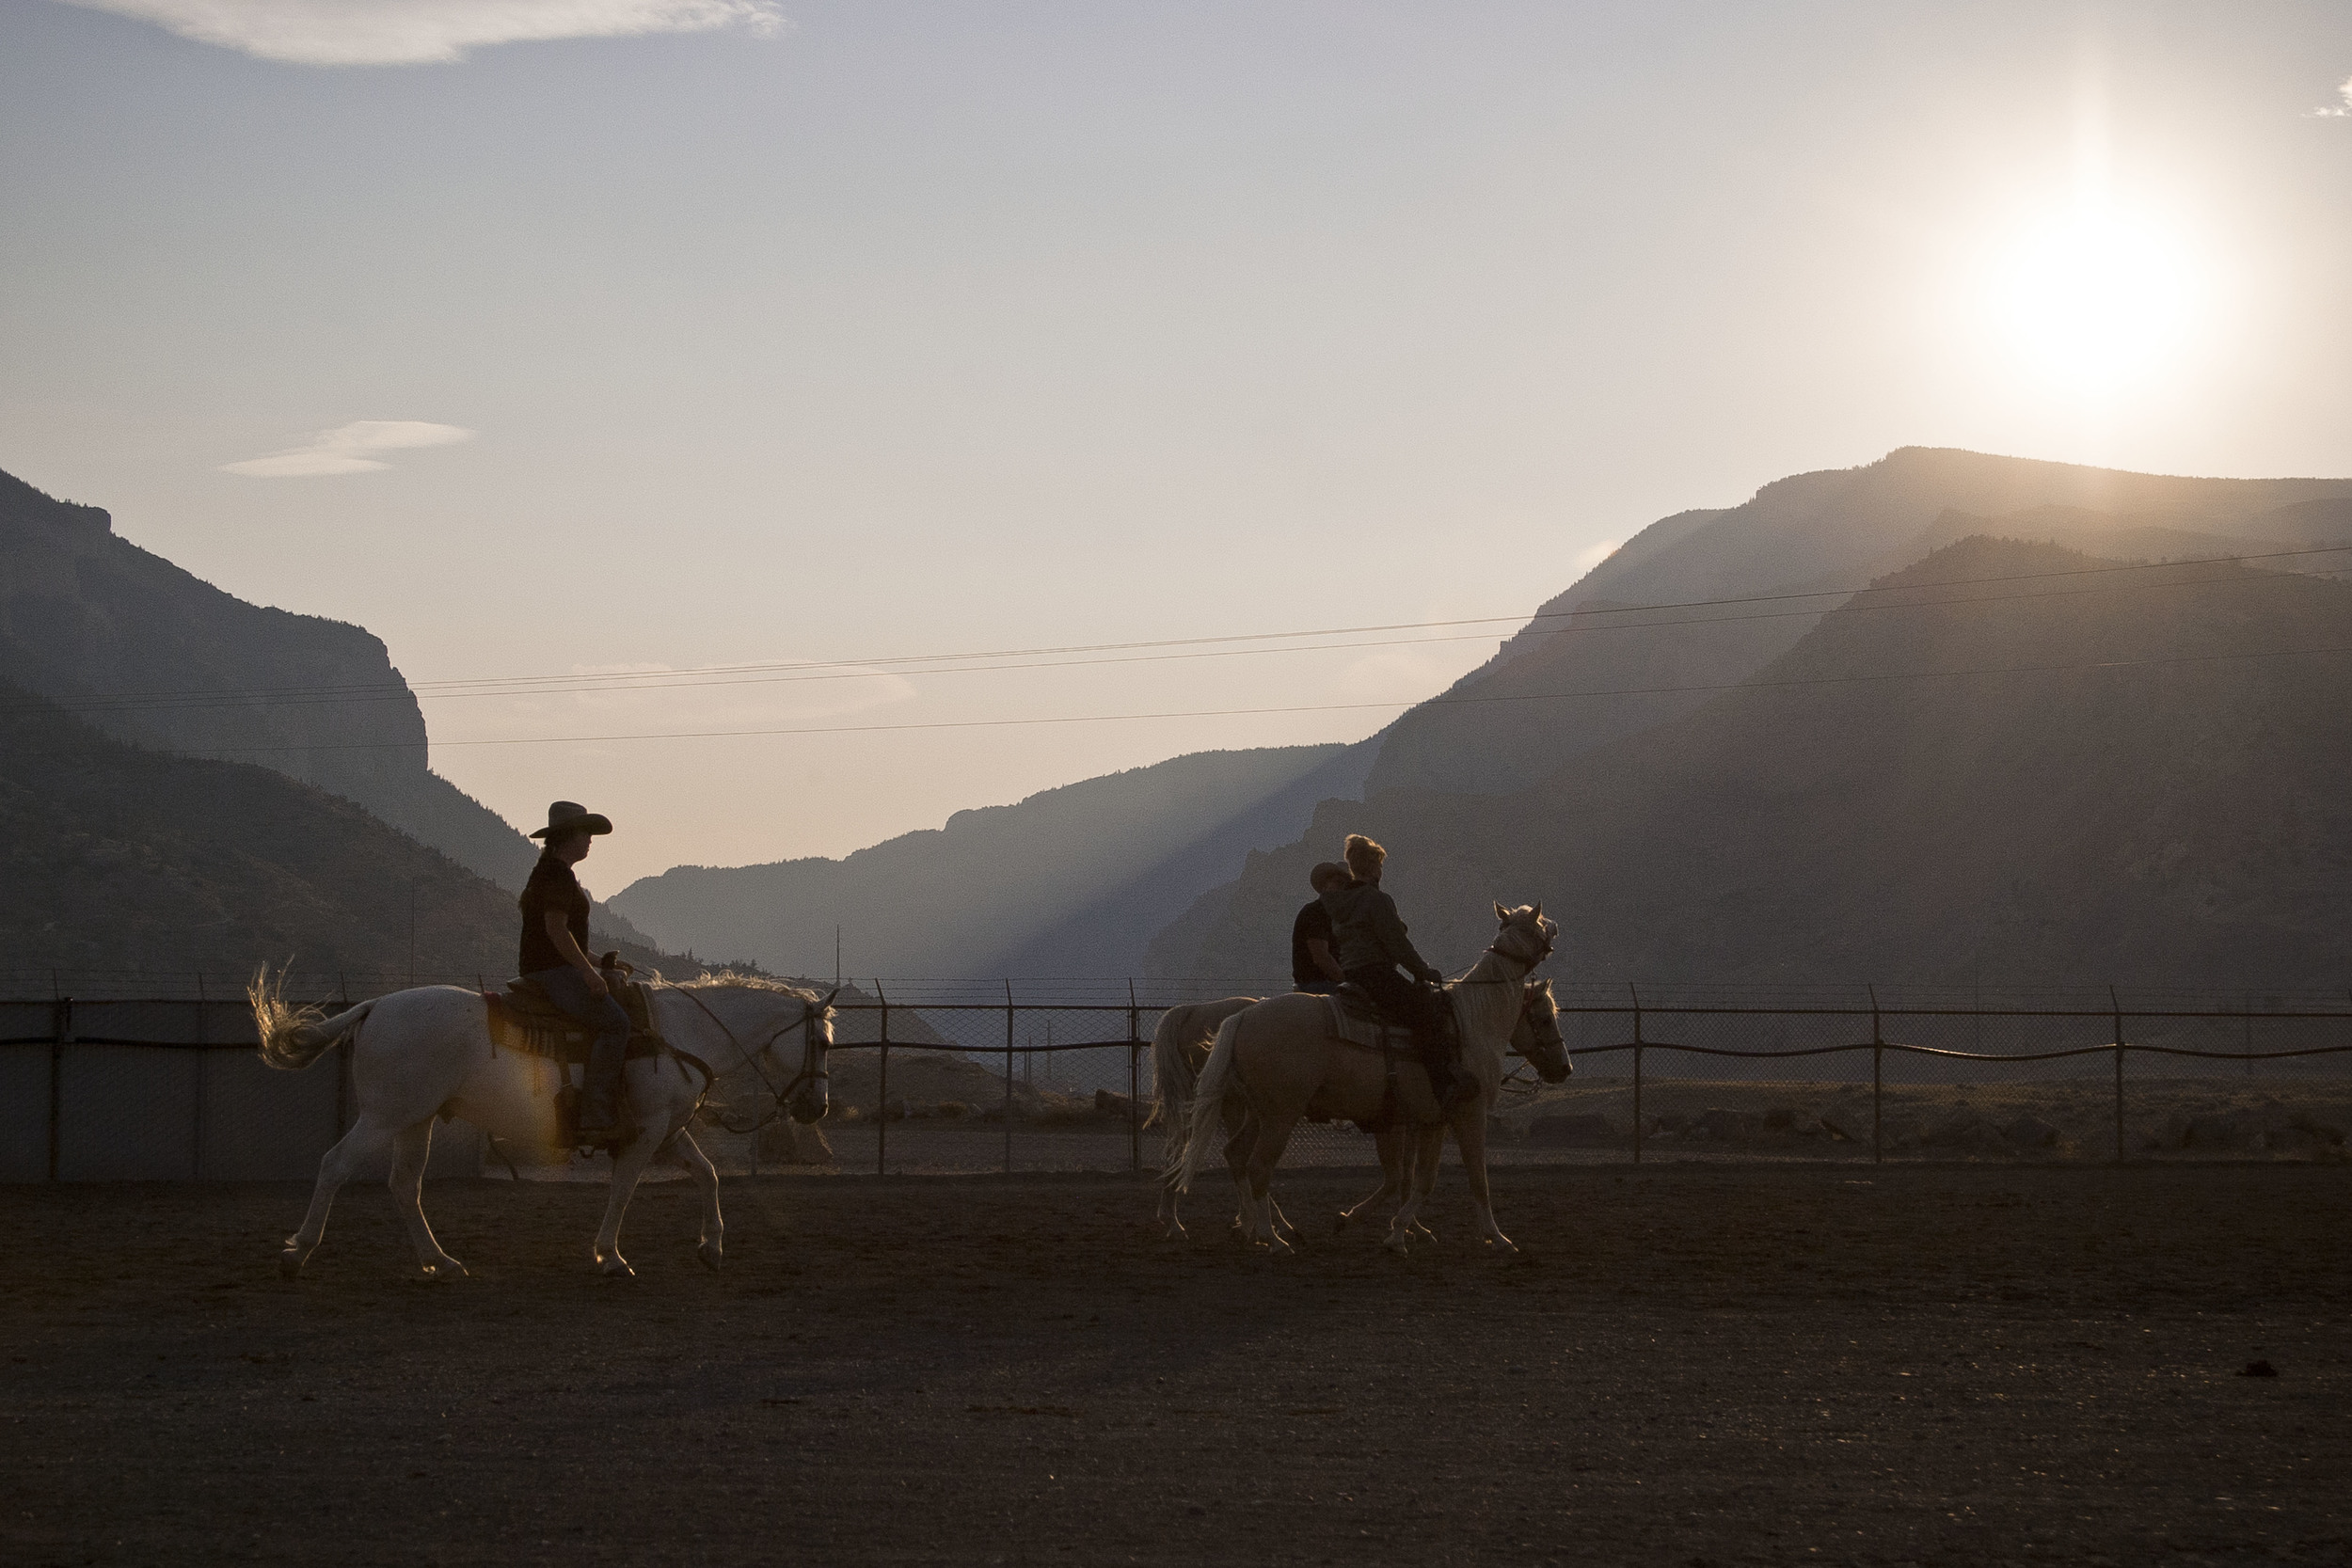 Sunset at the Cody Rodeo in Cody, Wyoming.